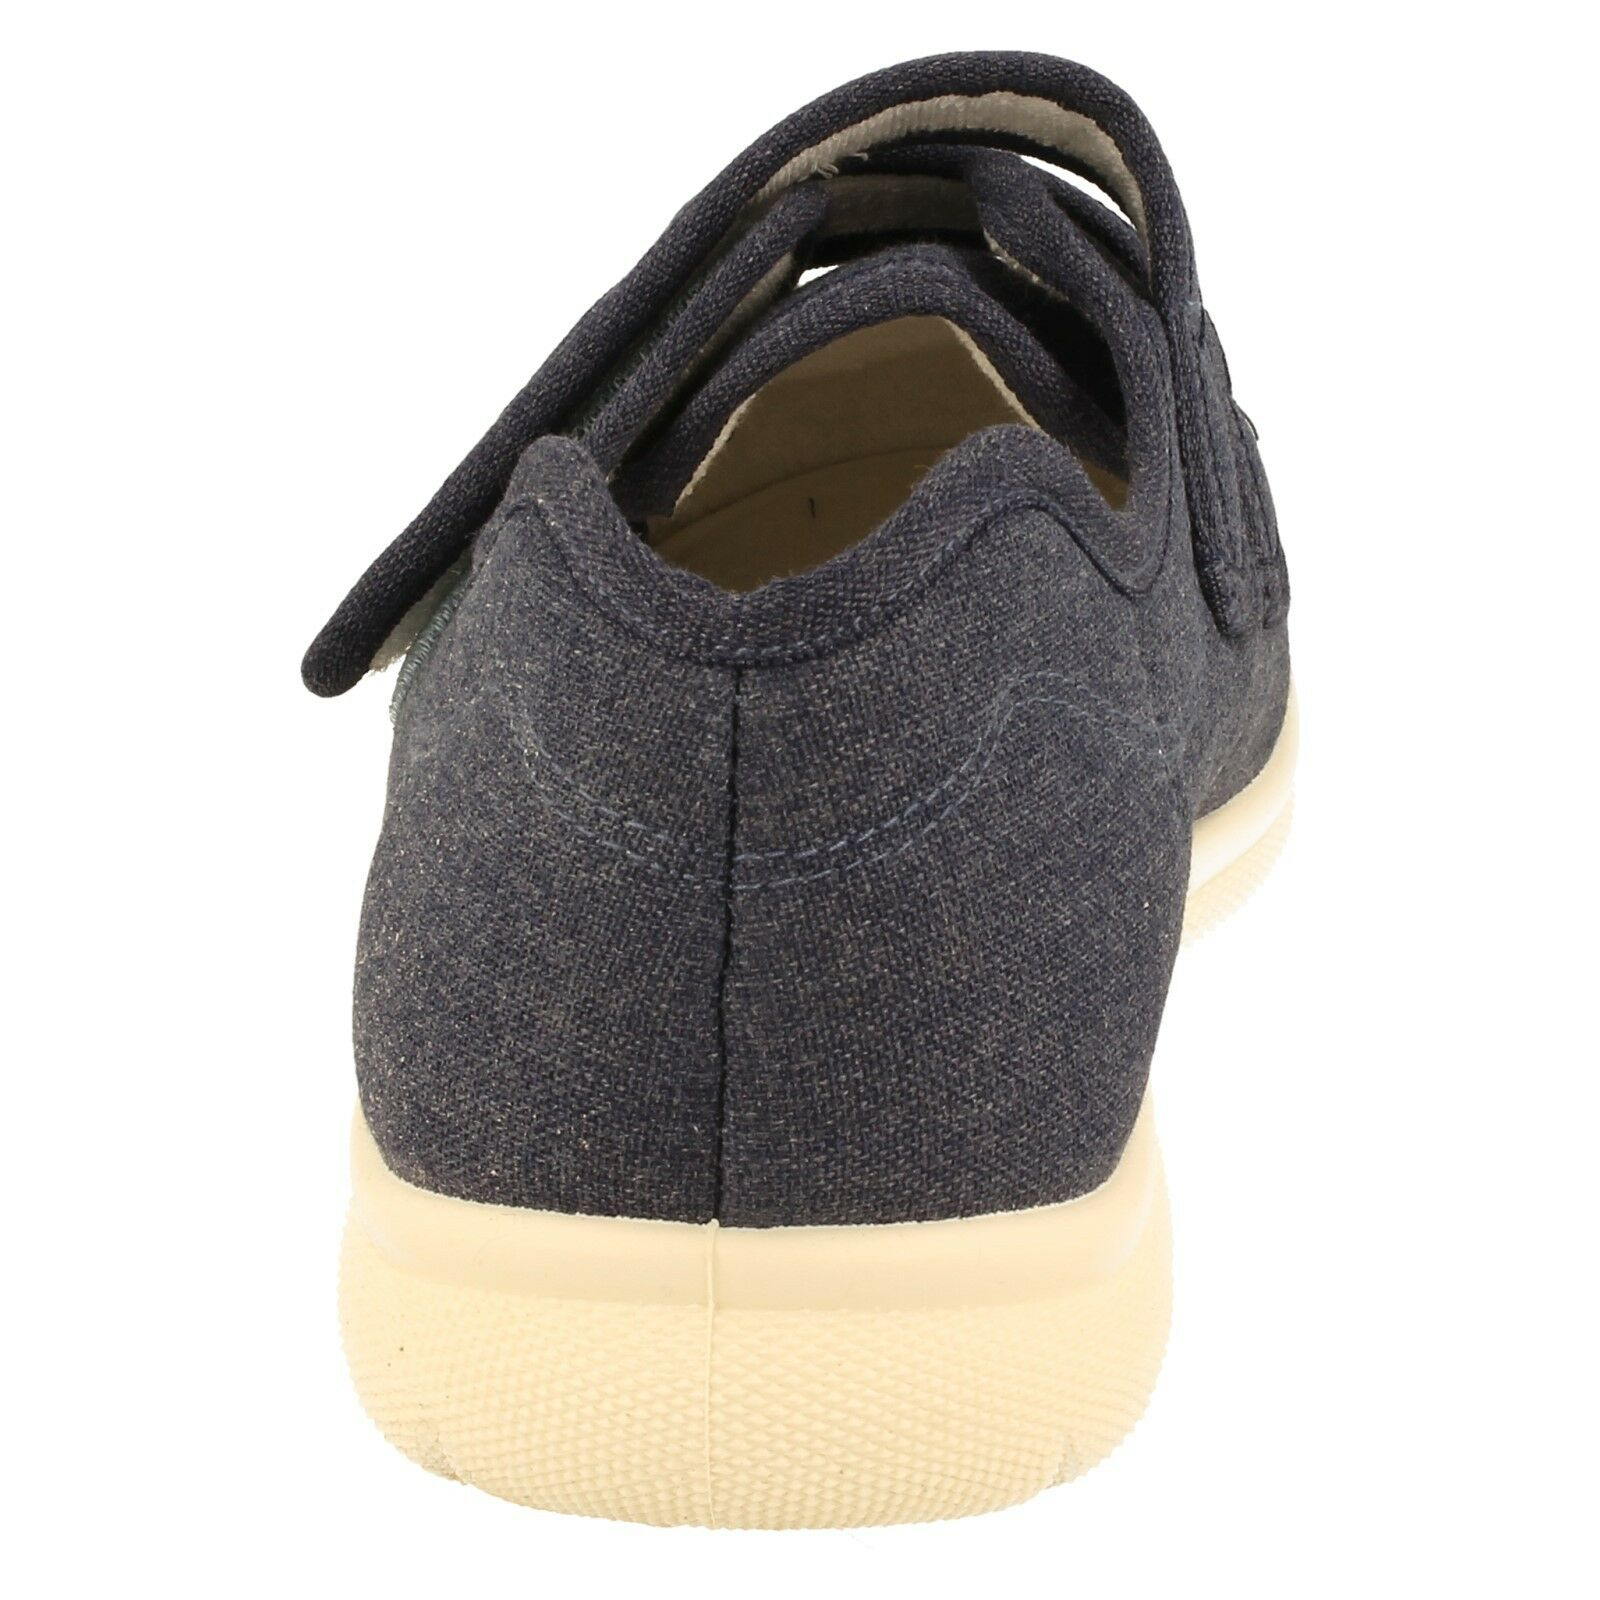 Men's DB Canvas Extra - Wide Fitting Schuhes - Extra Harris d2c925